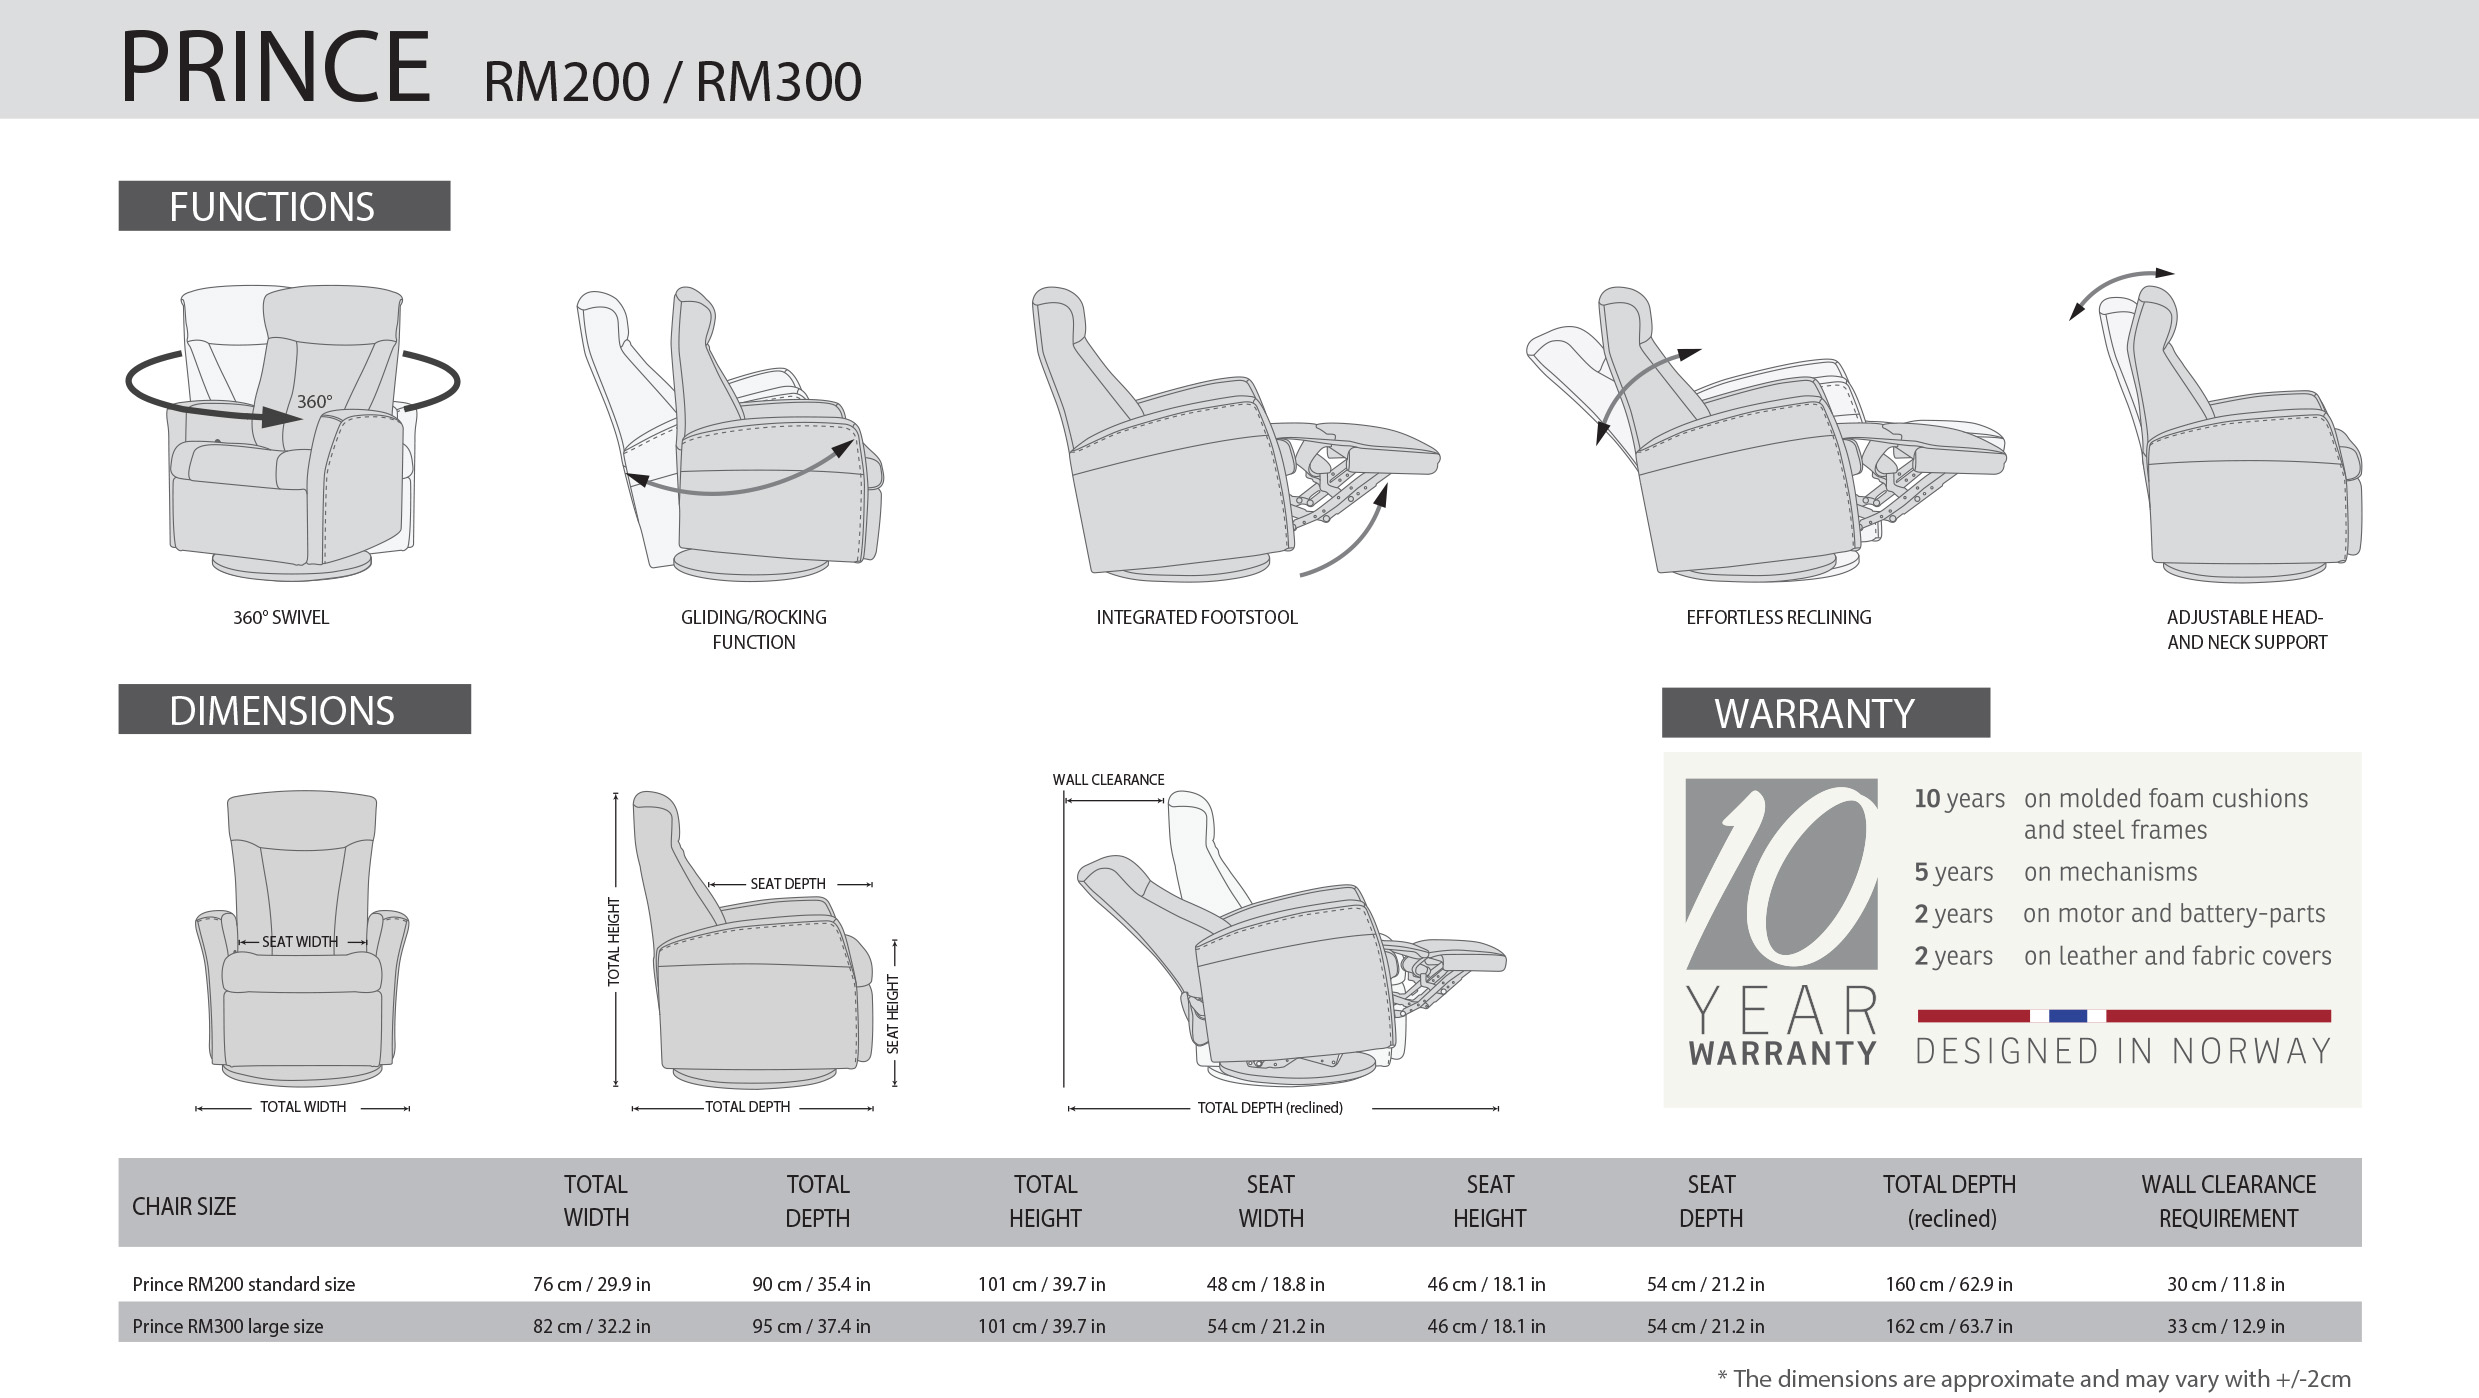 IMG Prince Recliner Dimensions